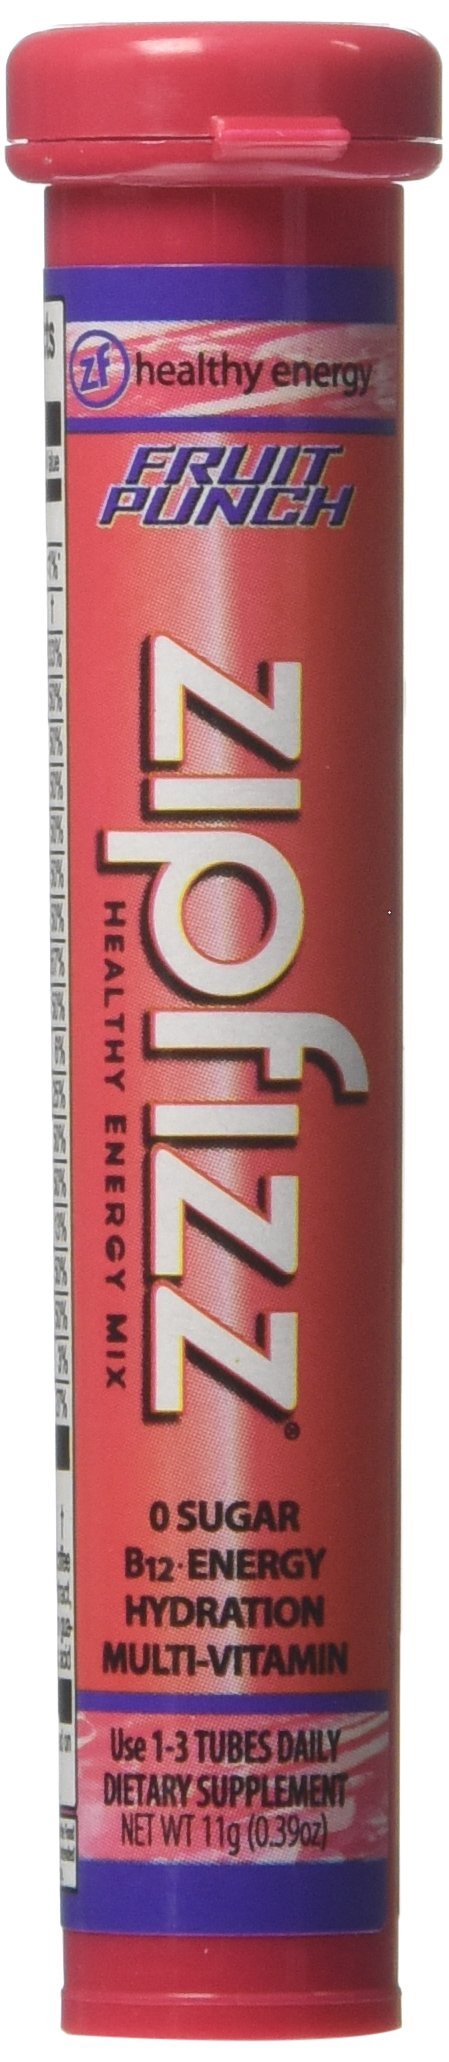 Zipfizz Fruit Punch Flavored Drink Packets, 20 Count by Zipfizz (Image #1)